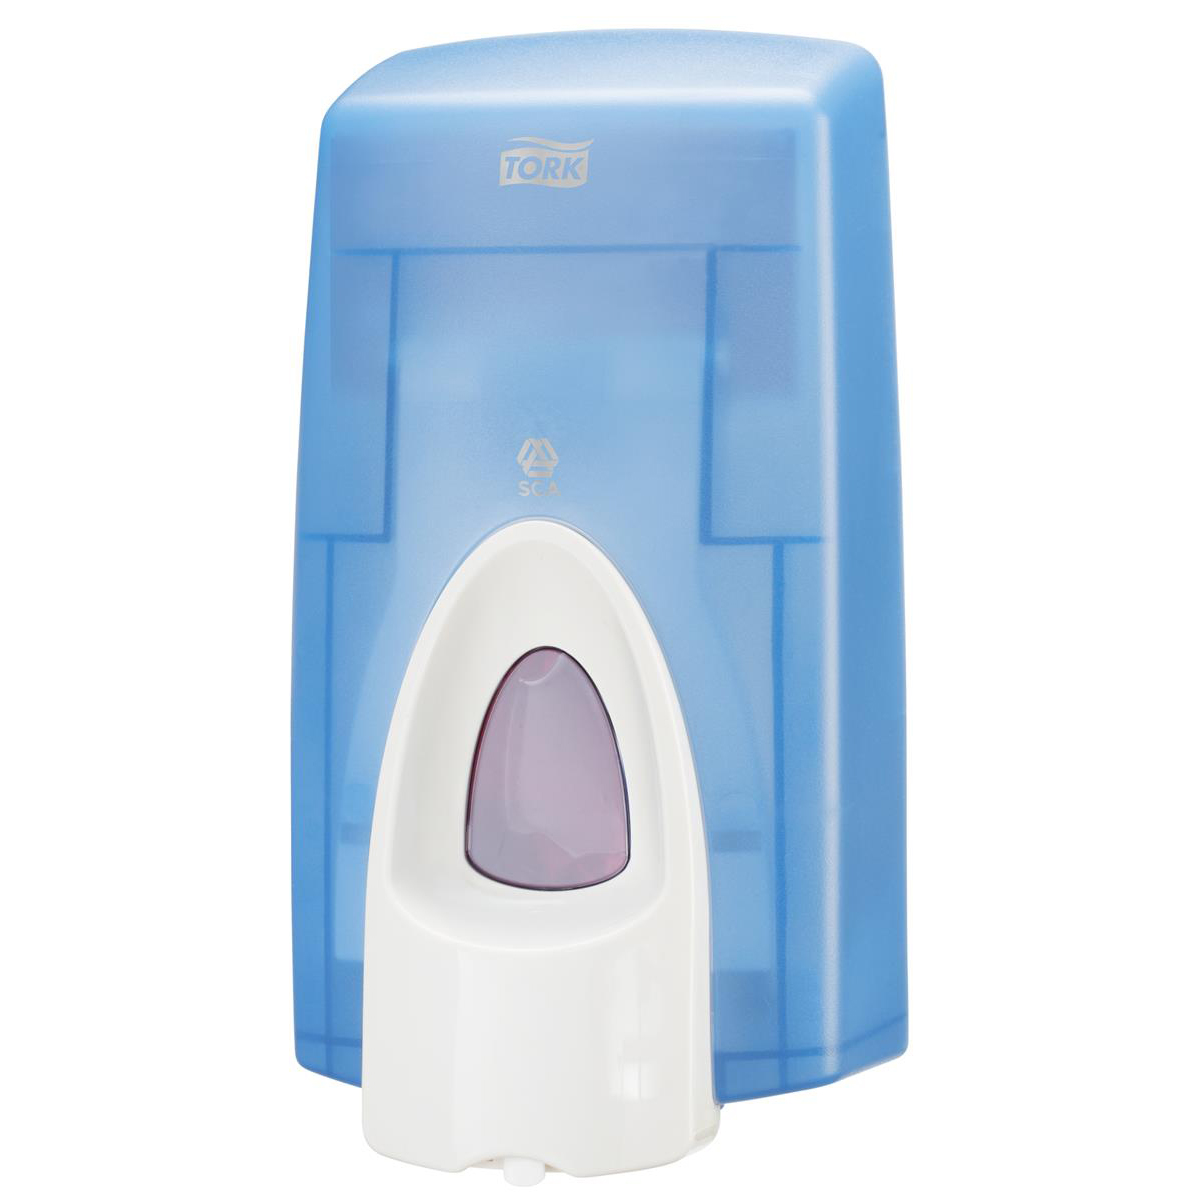 Tork Foam Soap Dispenser for 0.8 Litre Refill Cartridges Casing Blue Ref 470210